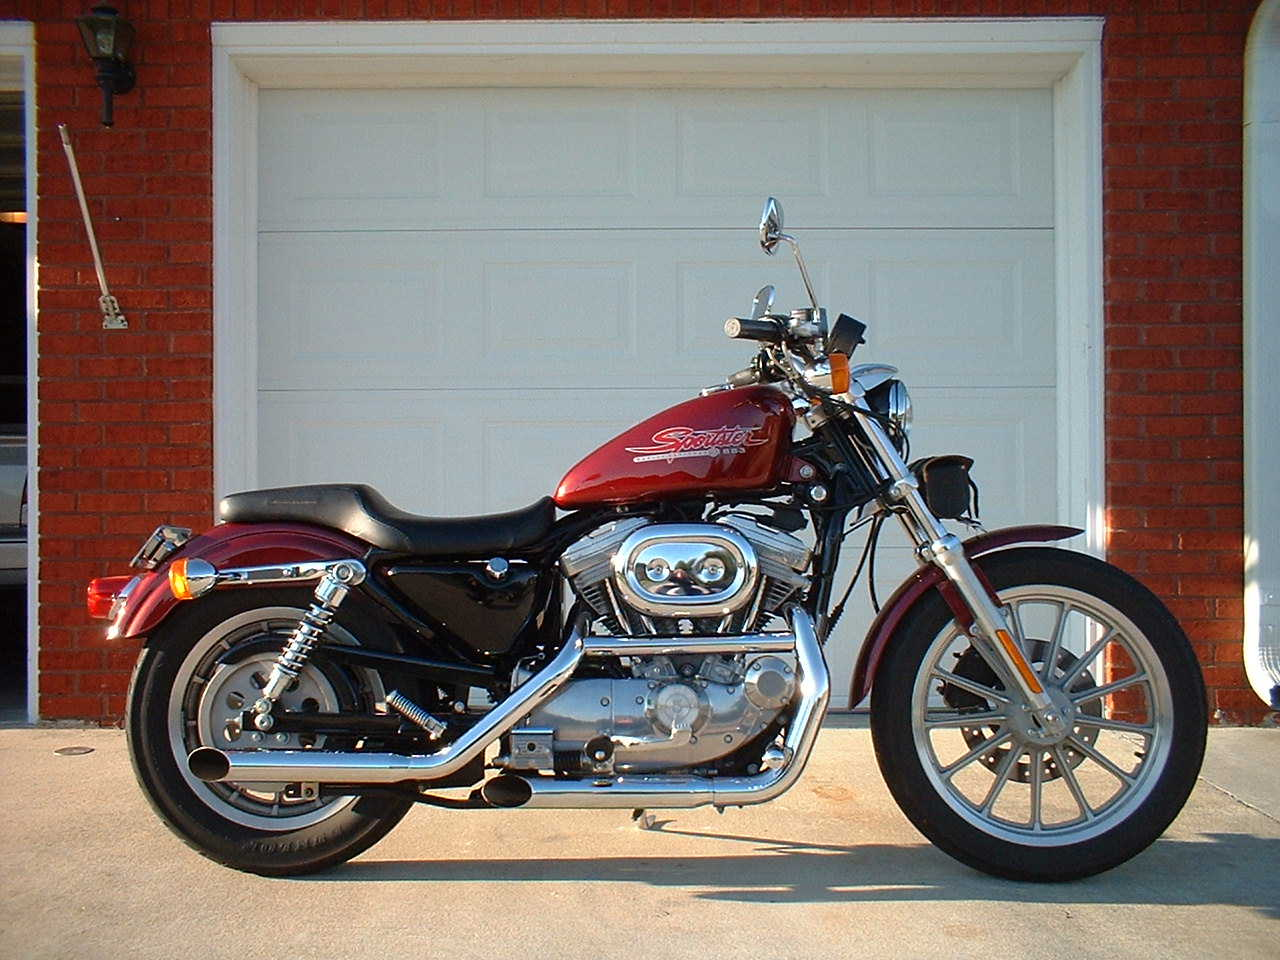 2000 Harley Davidson Sportster 883 Ide Dimage De Moto Xl Wiring Harness The And Buell Motorcycle Hd Sportbikes